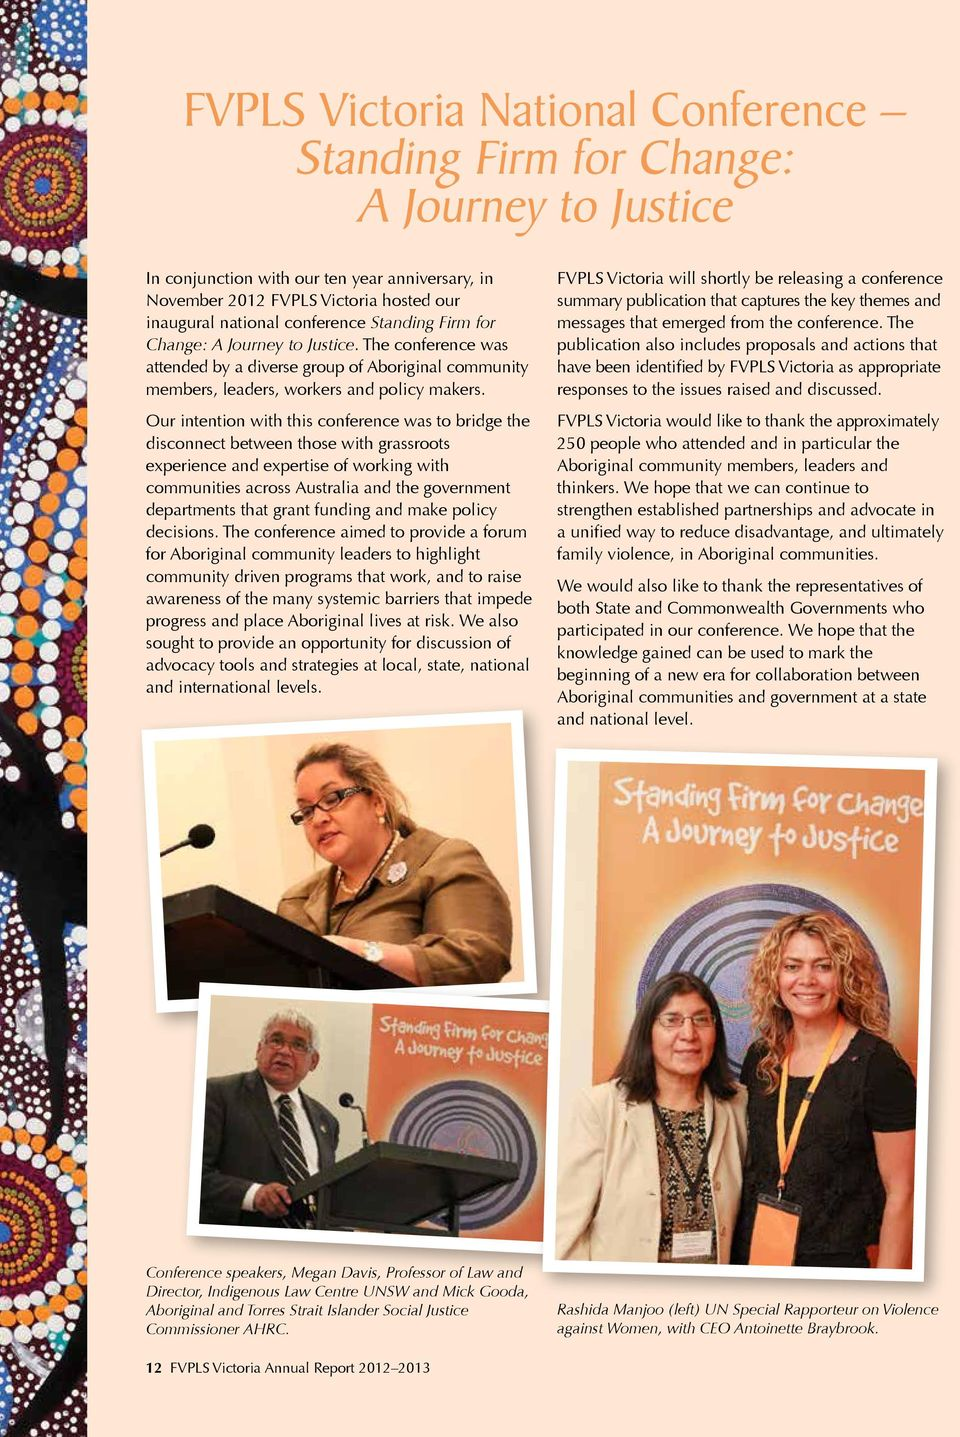 Our intention with this conference was to bridge the disconnect between those with grassroots experience and expertise of working with communities across Australia and the government departments that